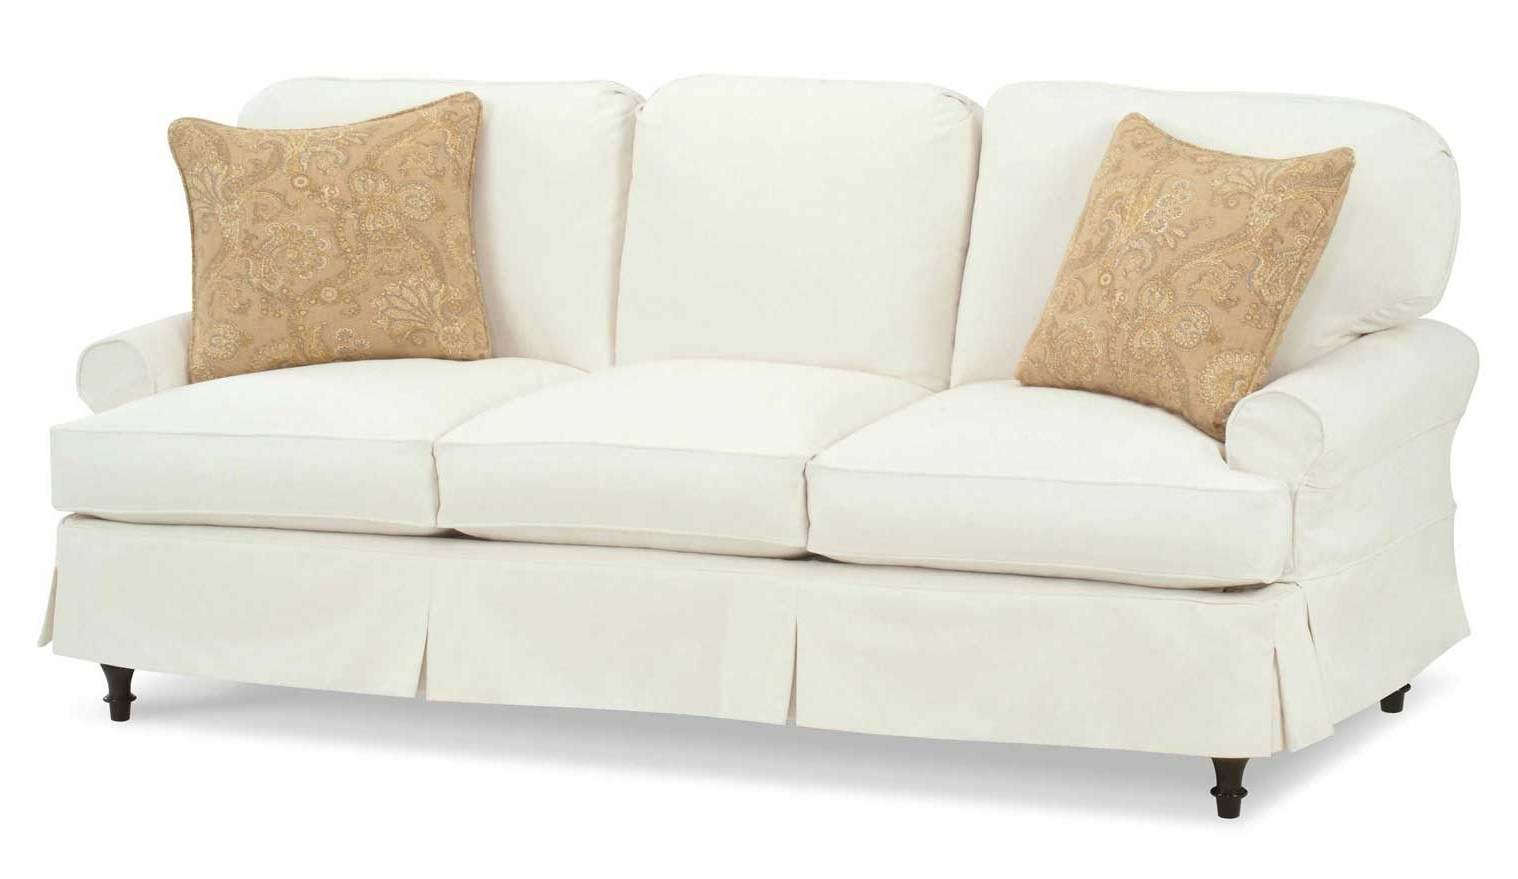 Cottage Home® Intended For Newest Country Style Sofas (View 11 of 20)